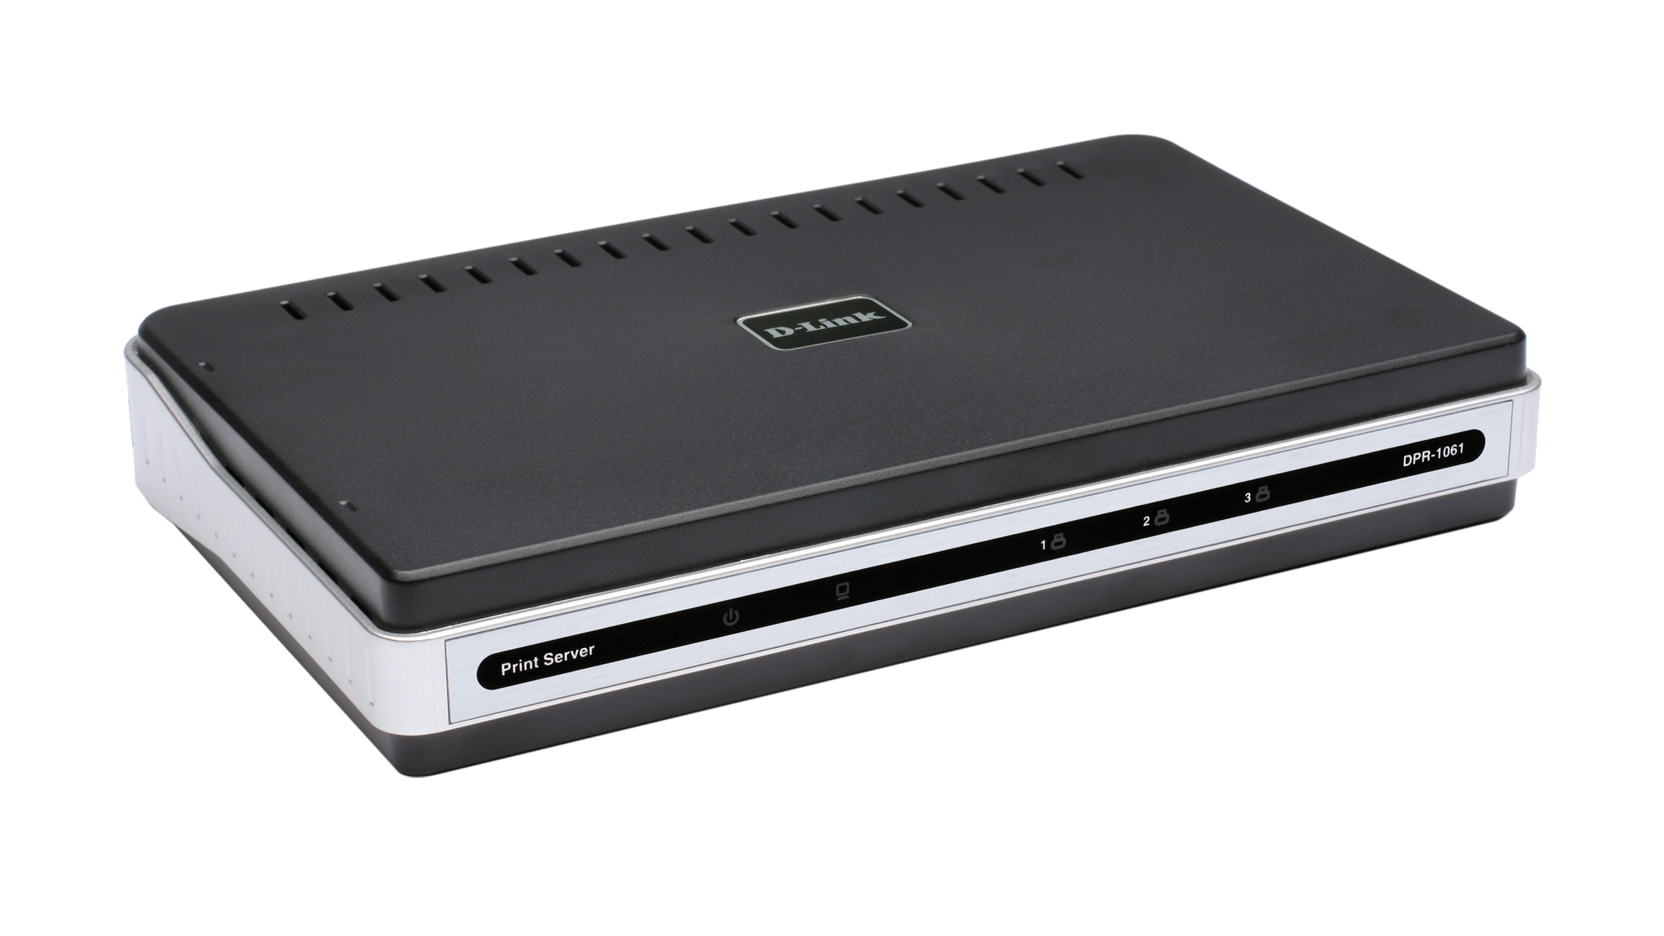 DPR-1061 3-Port Multifunction Print Server